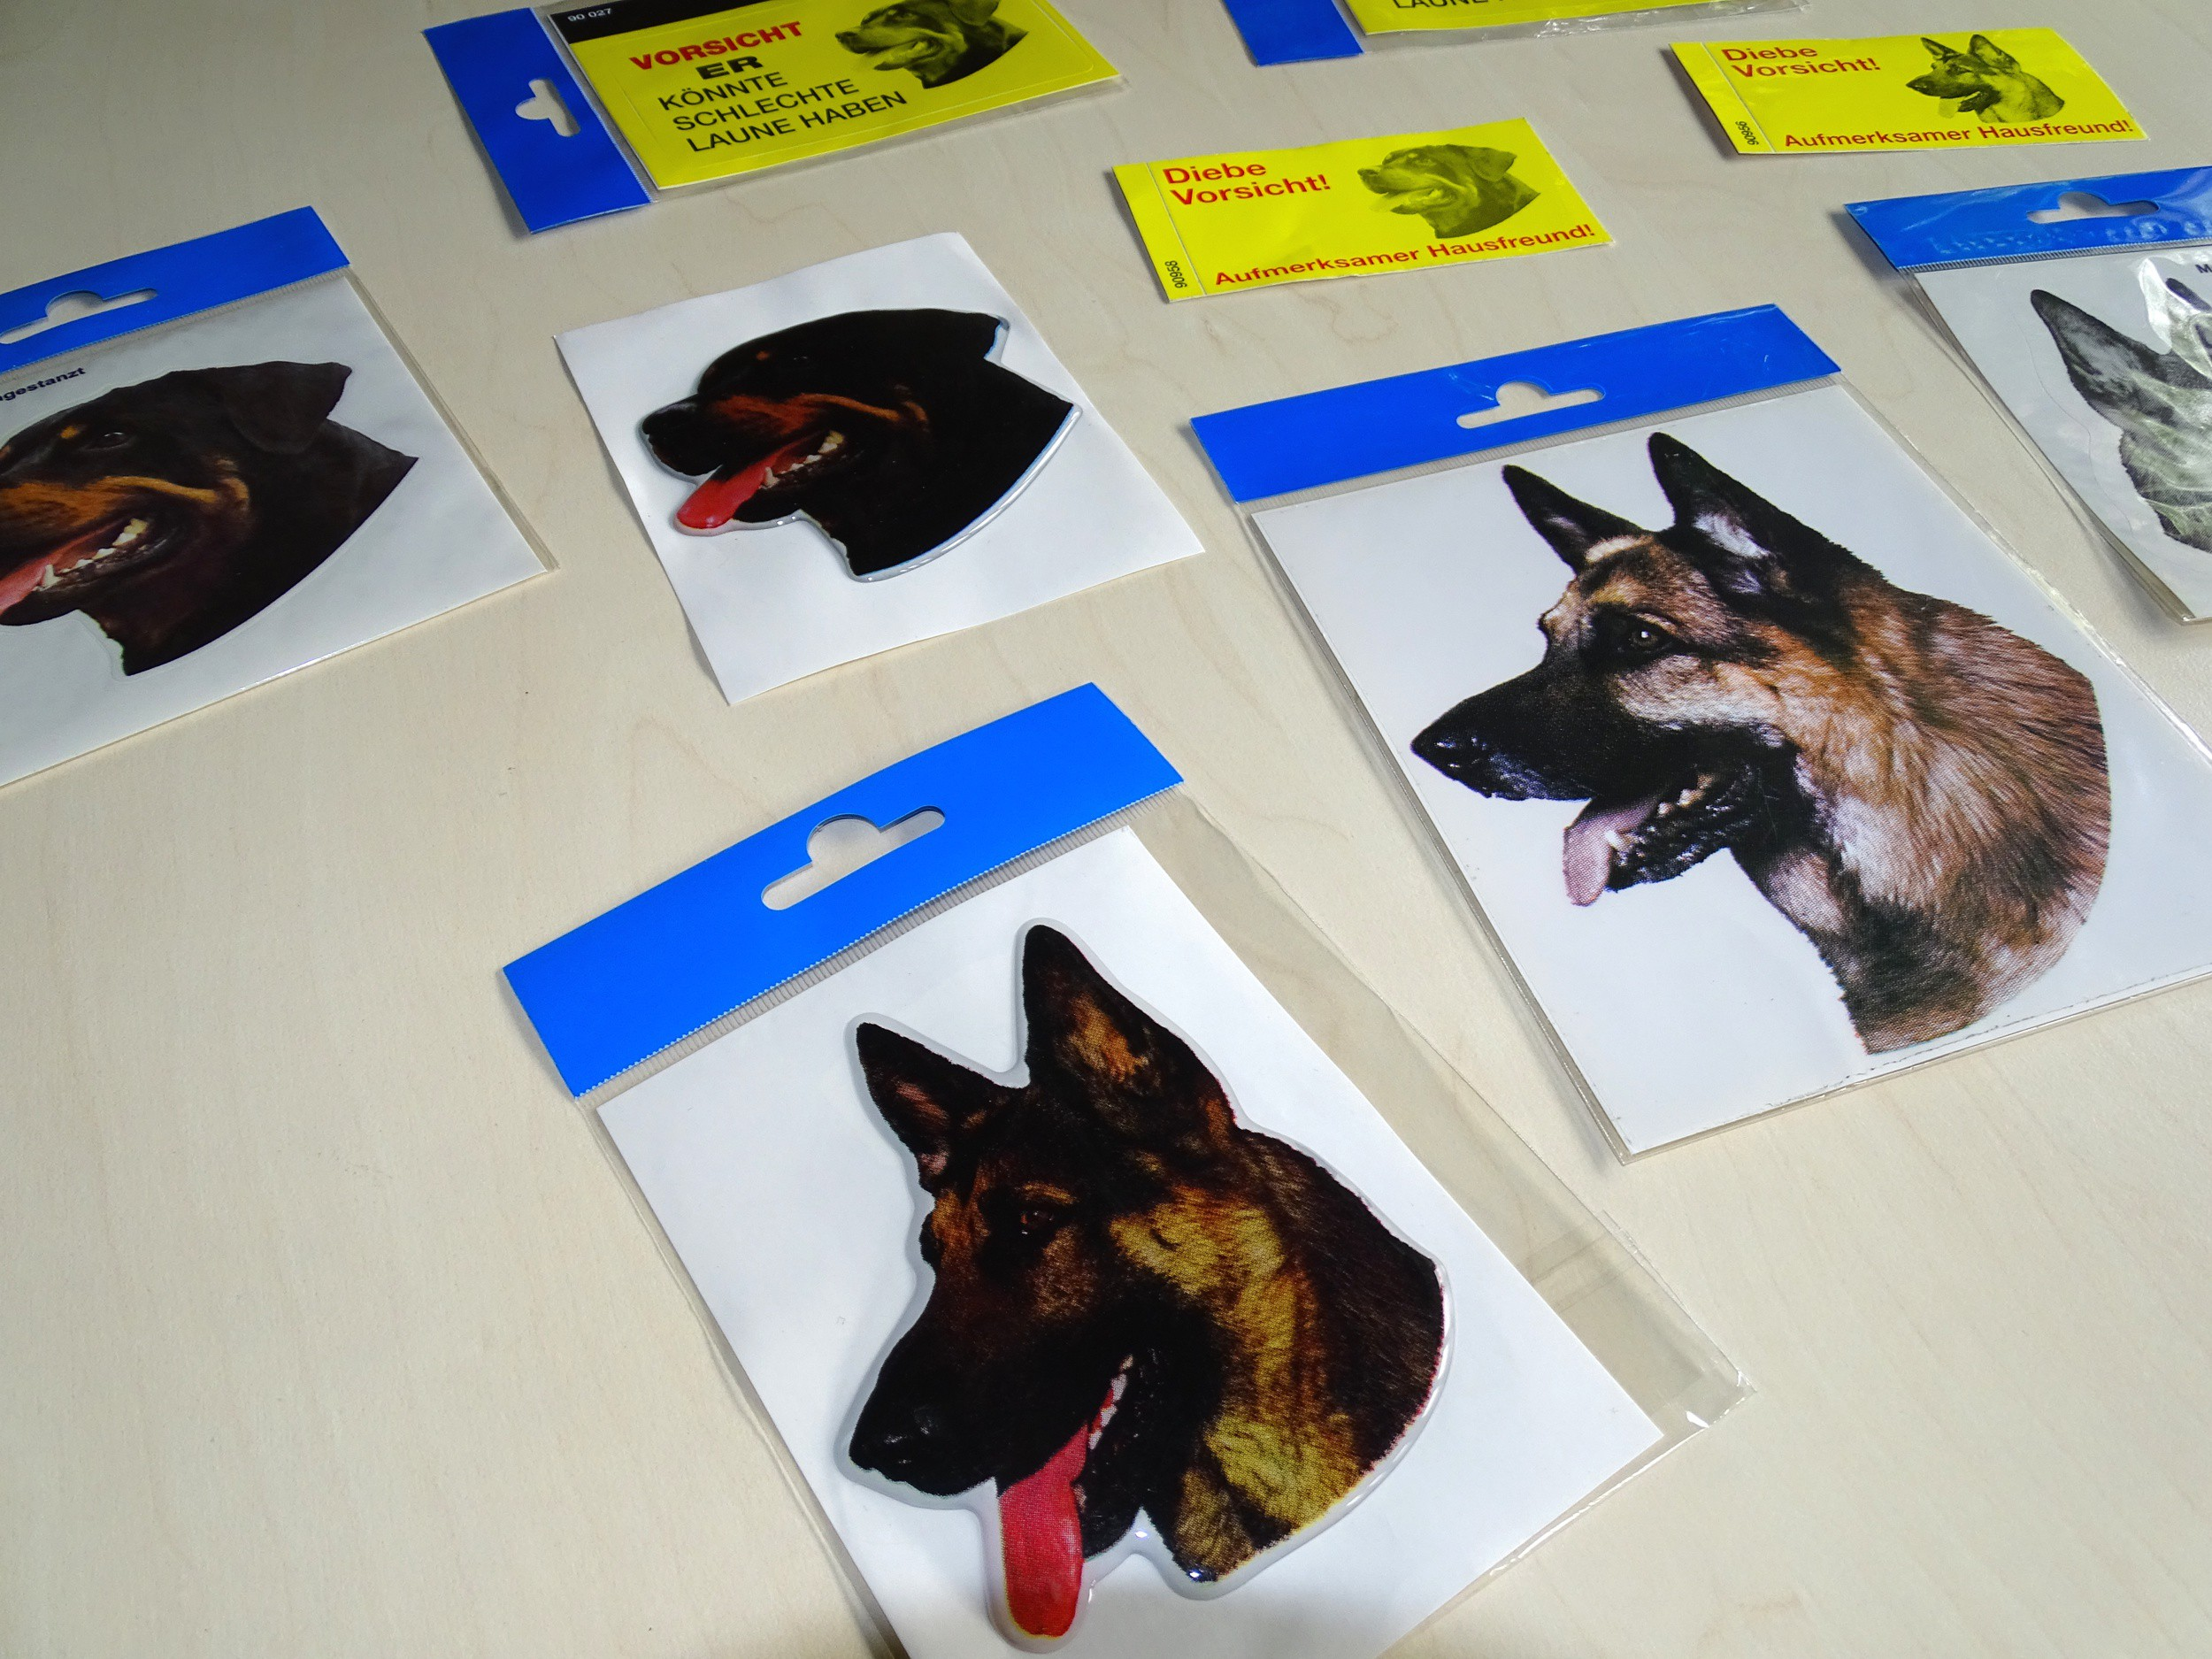 Sticker german shepherd 160 x 140 mm – Bild 4